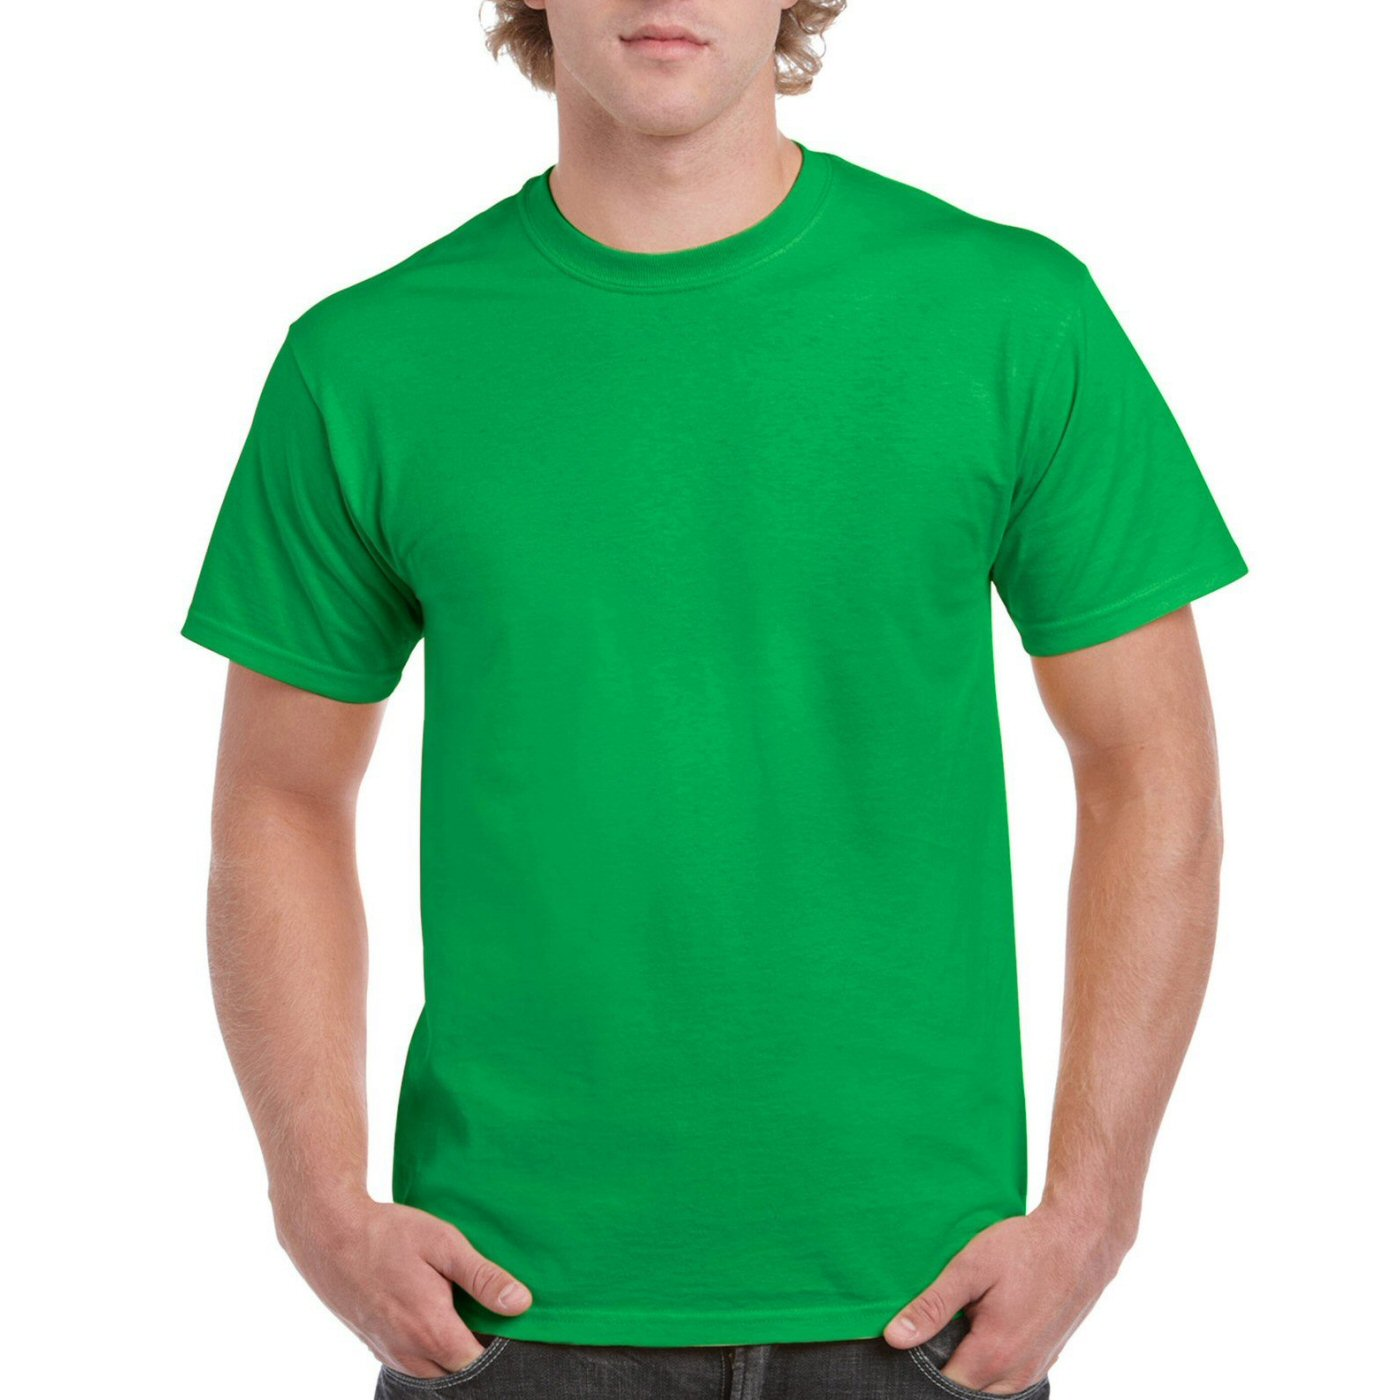 Flag Green Plain Round Neck T-shirt image